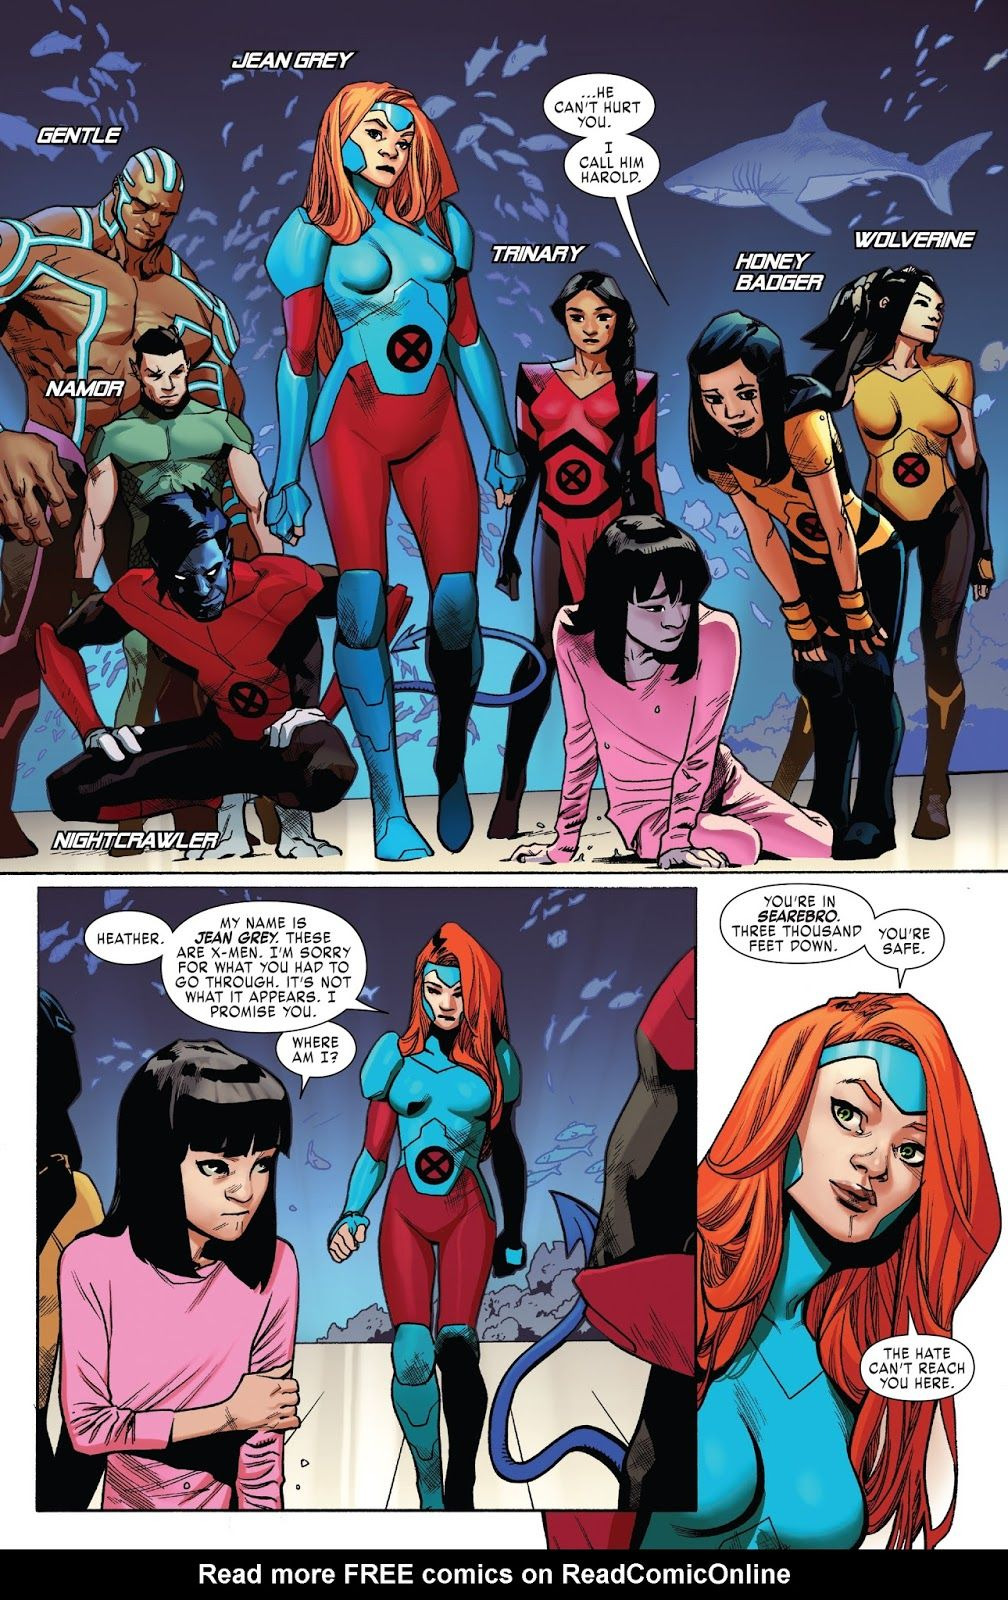 X Men Red Issue 1 Read X Men Red Issue 1 Comic Online In High Quality En 2020 Superheroes Marvel Marvel Comics